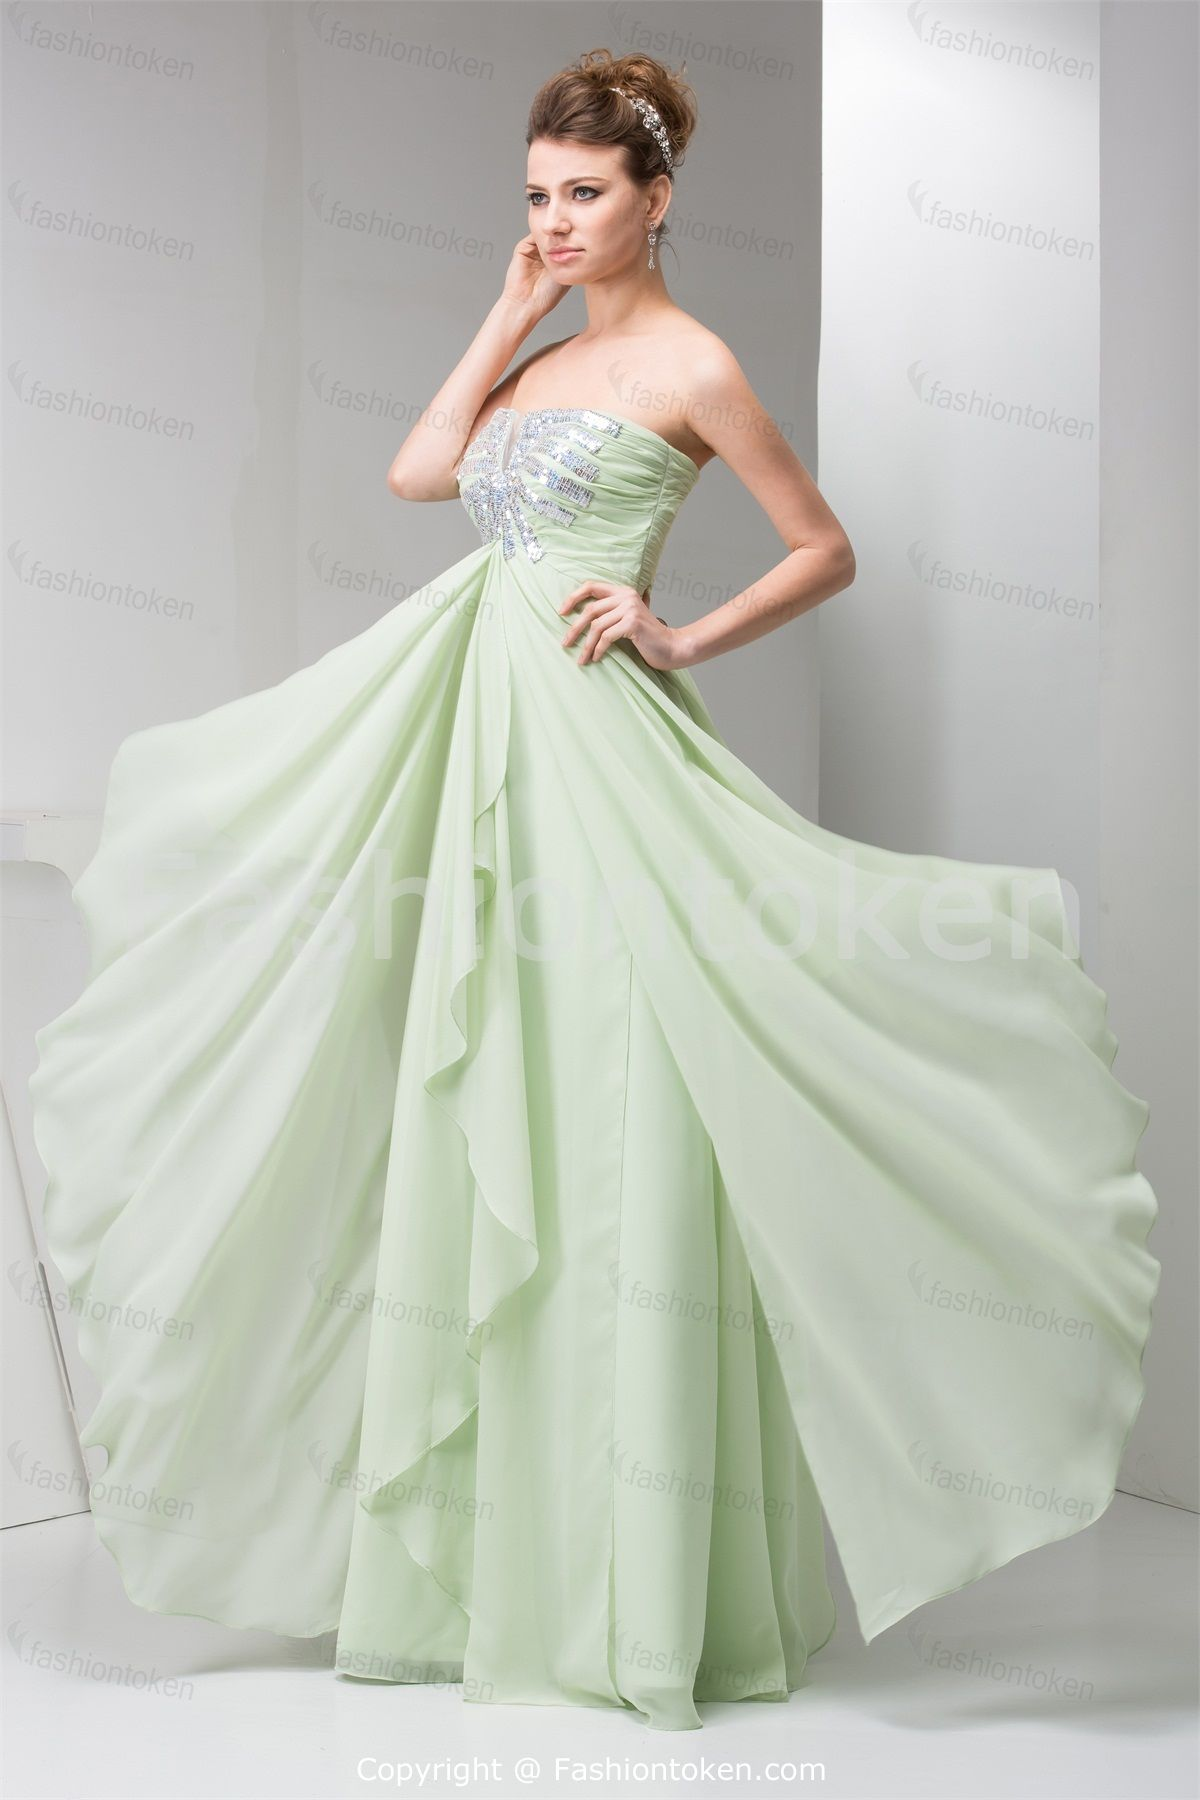 Pin by ky kymberly ellis on green gowns pinterest green gown